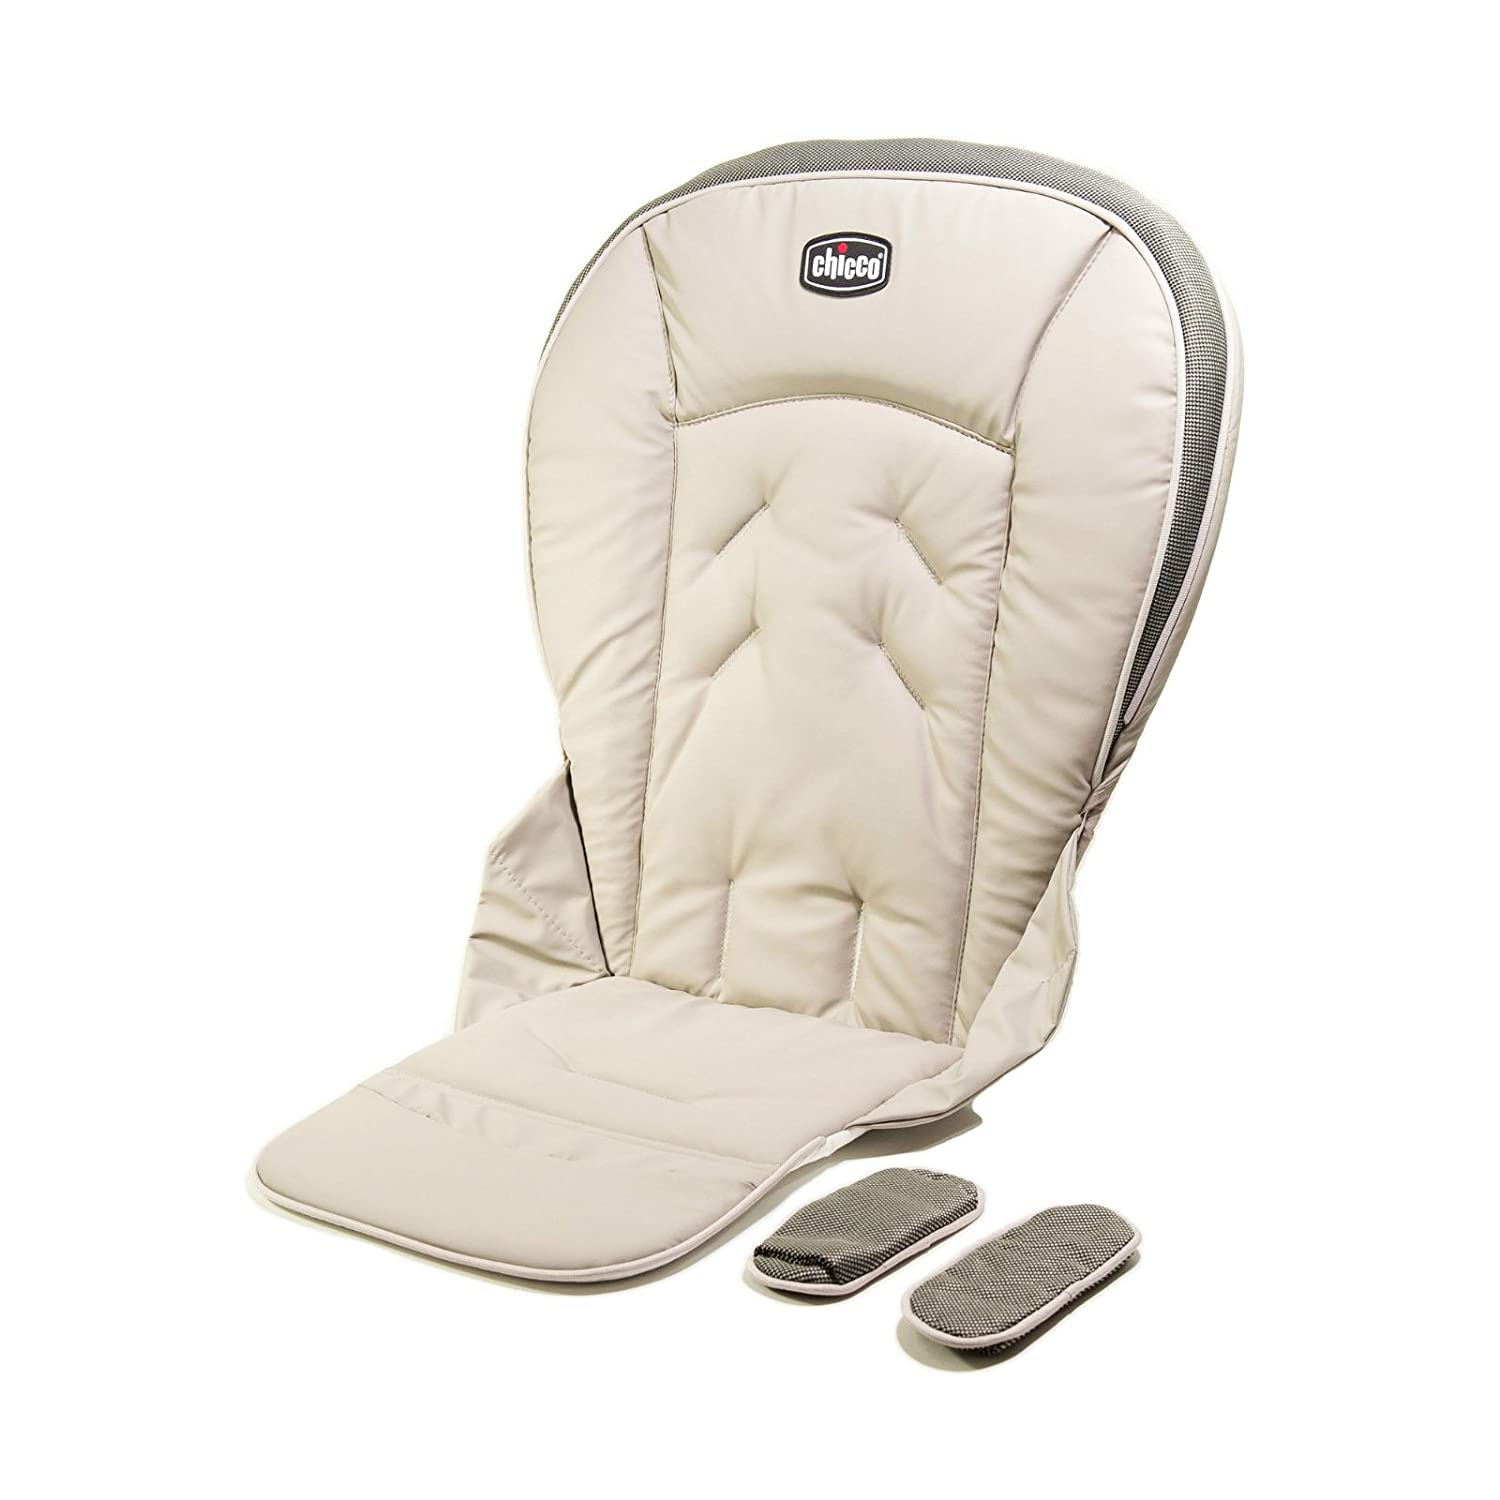 Chicco Polly 13 Highchair Replacement Seat Cushion and Harness Shoulder Pads Papyrus